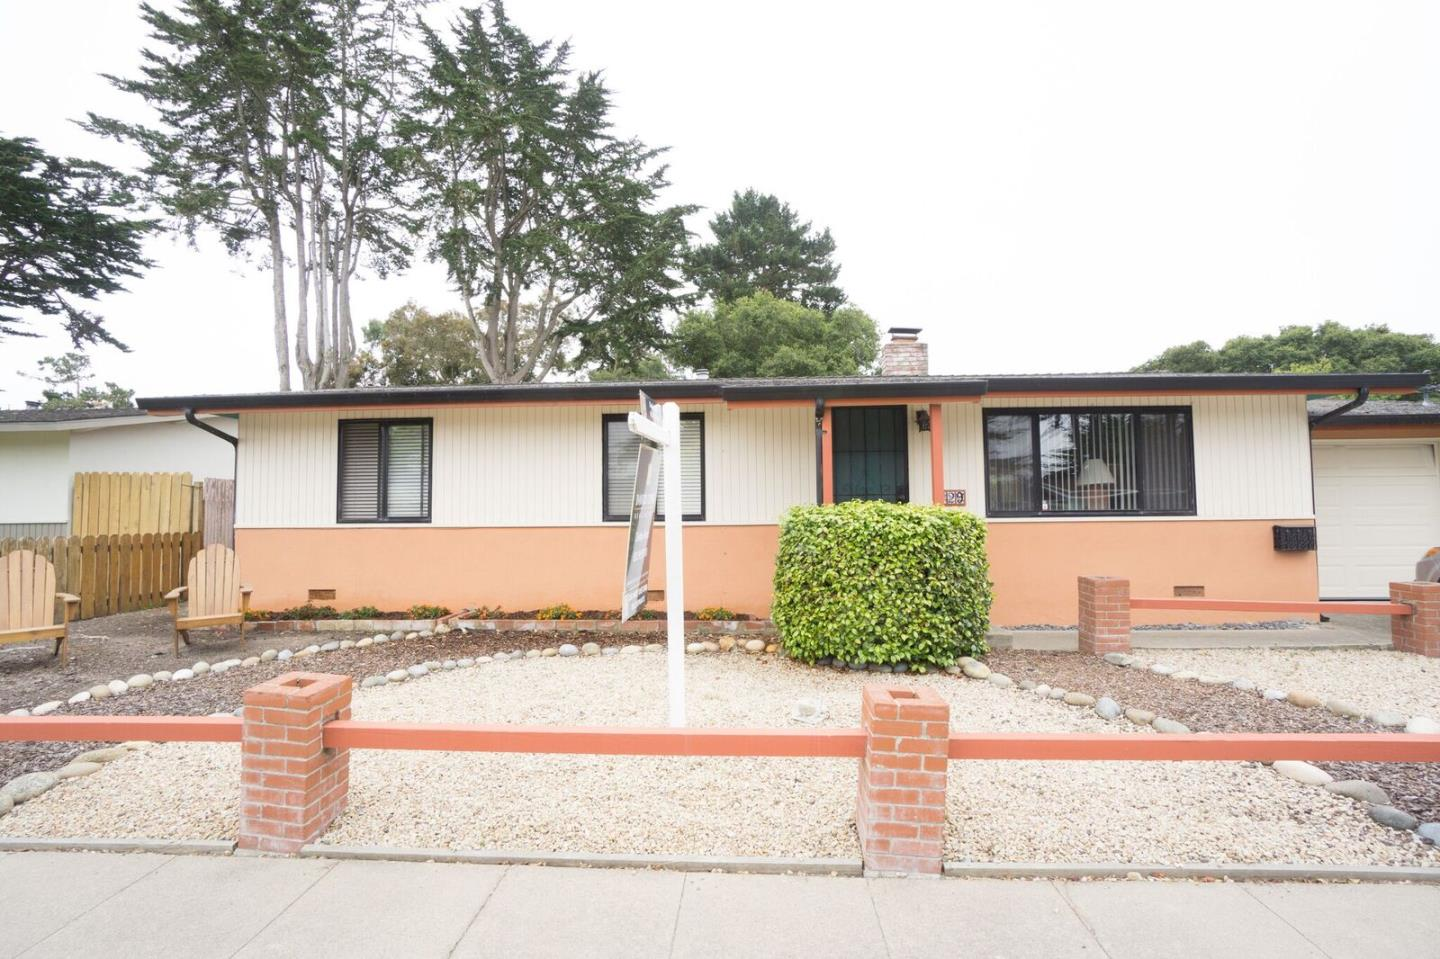 Additional photo for property listing at 729 Rosemont Avenue  Pacific Grove, Kalifornien 93950 Vereinigte Staaten